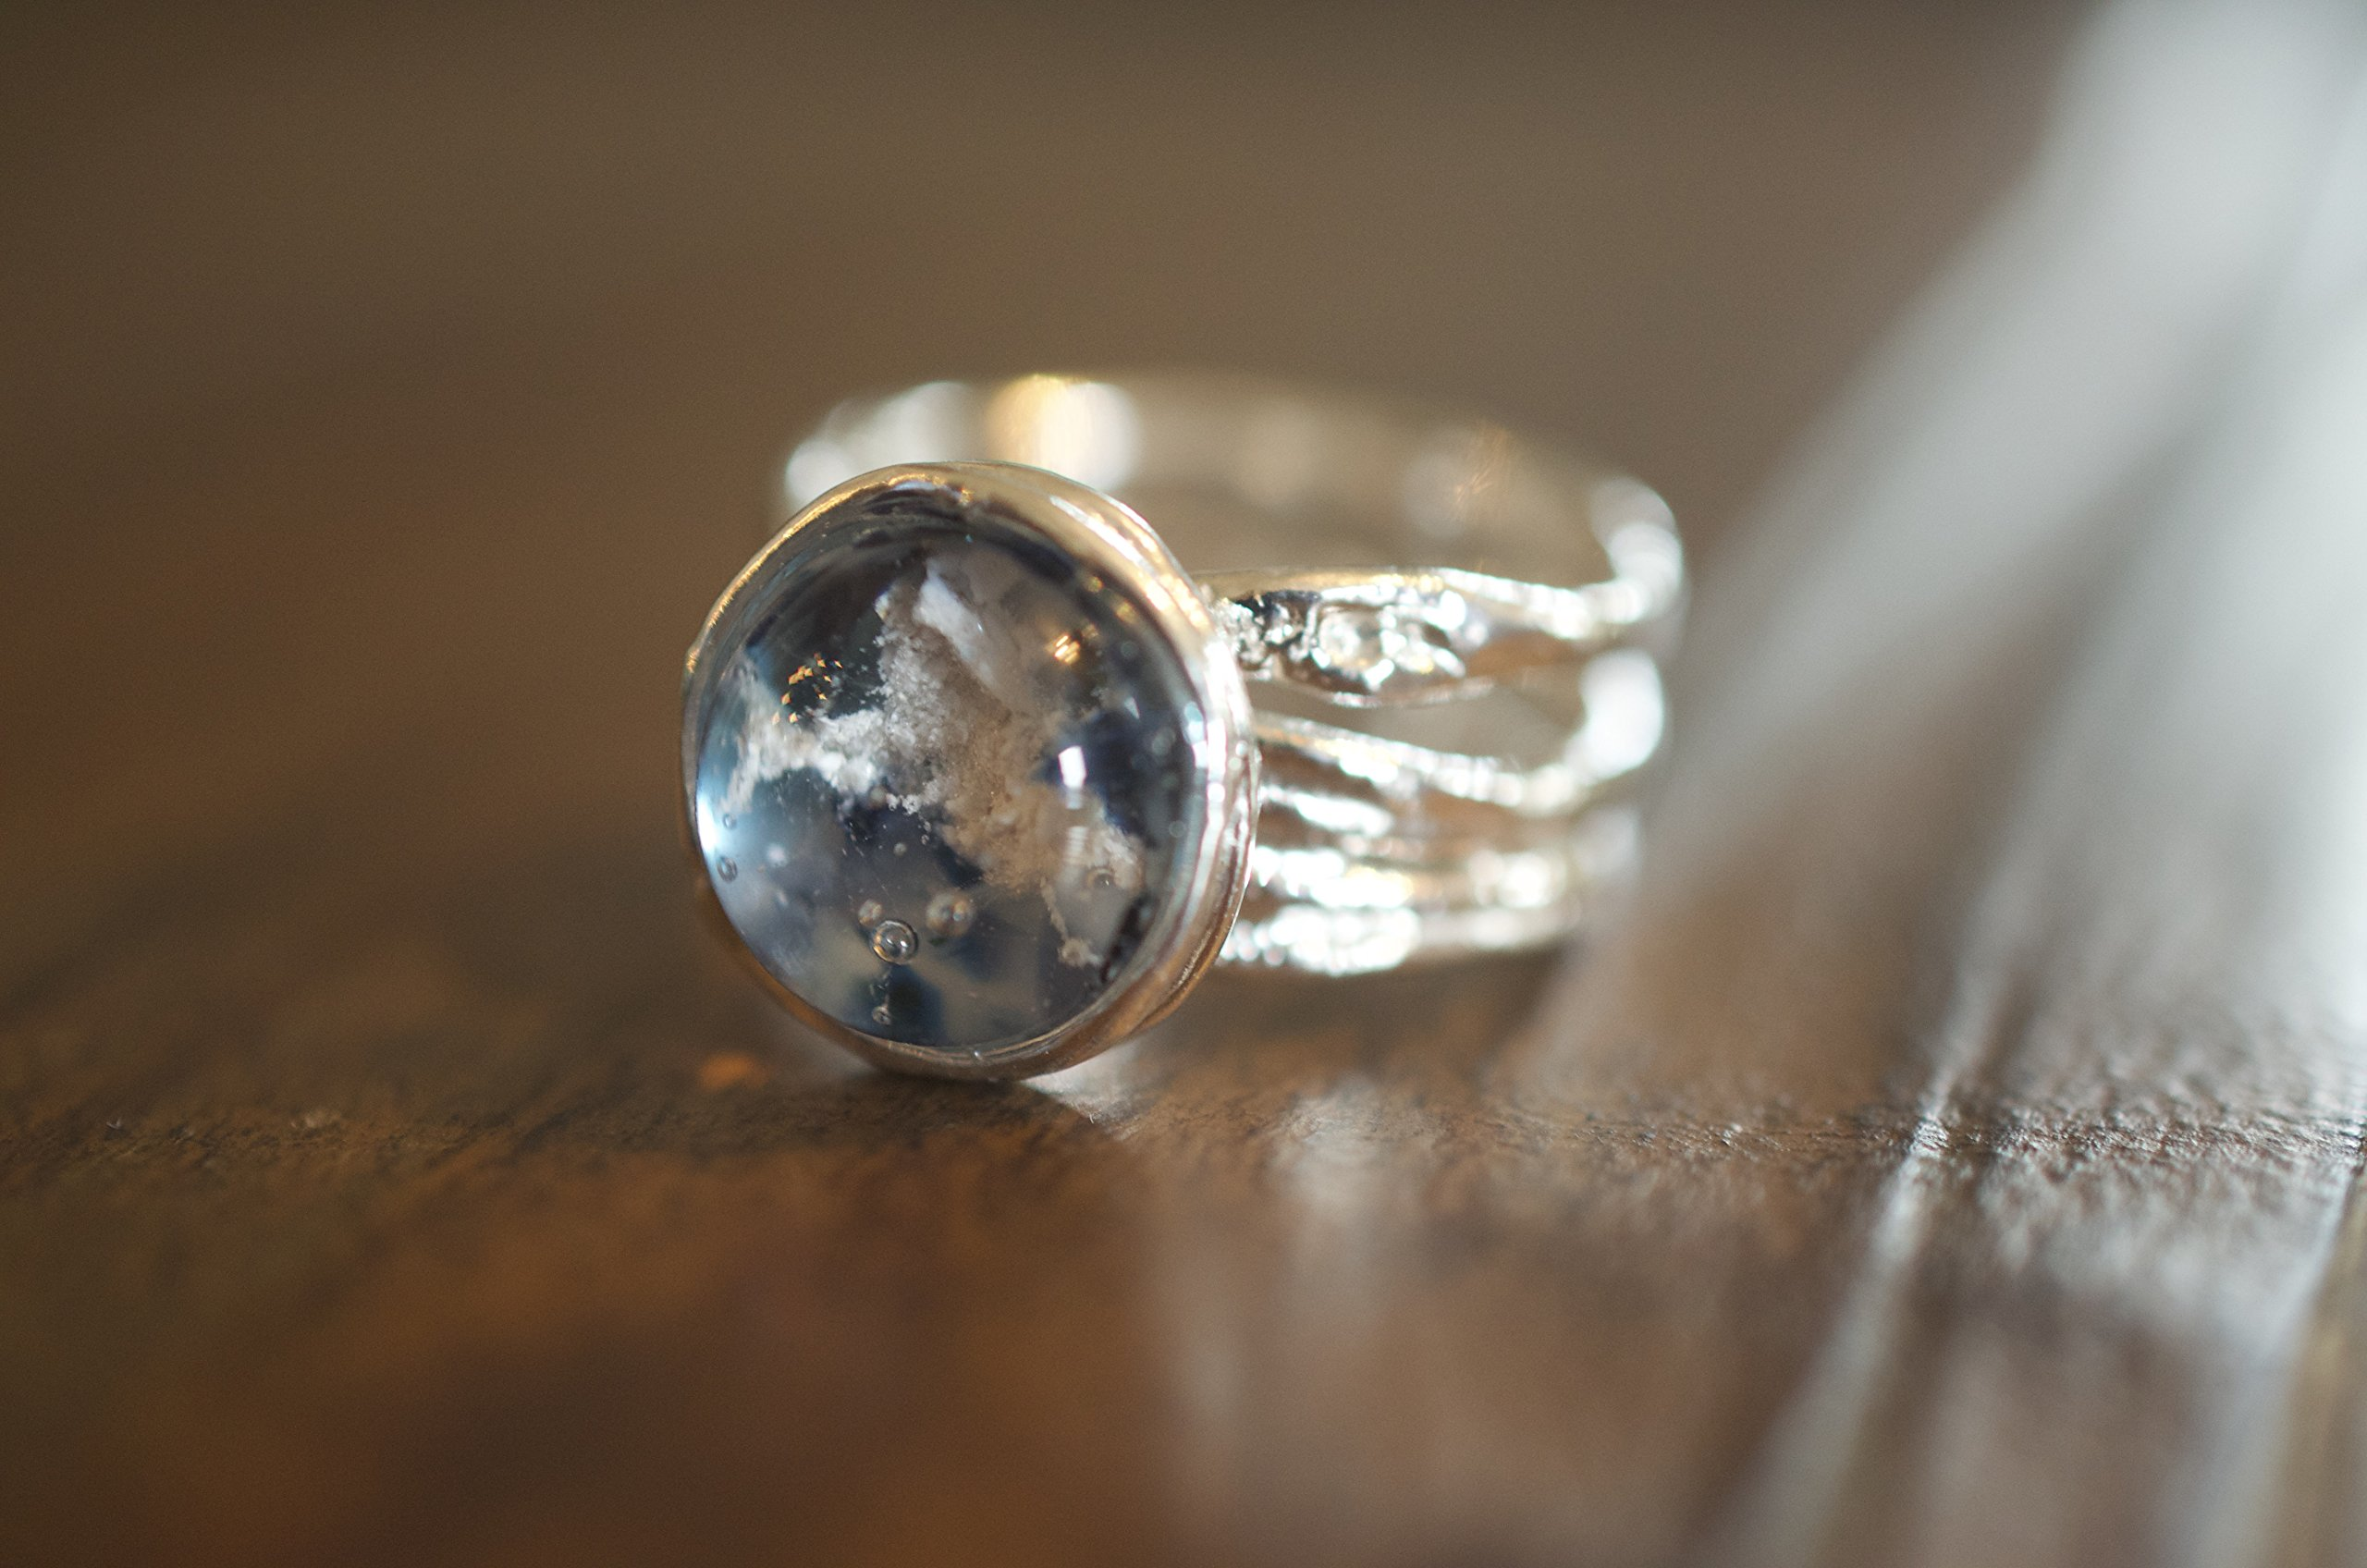 The Freya Glass Cremation Ring made with ashes and glass